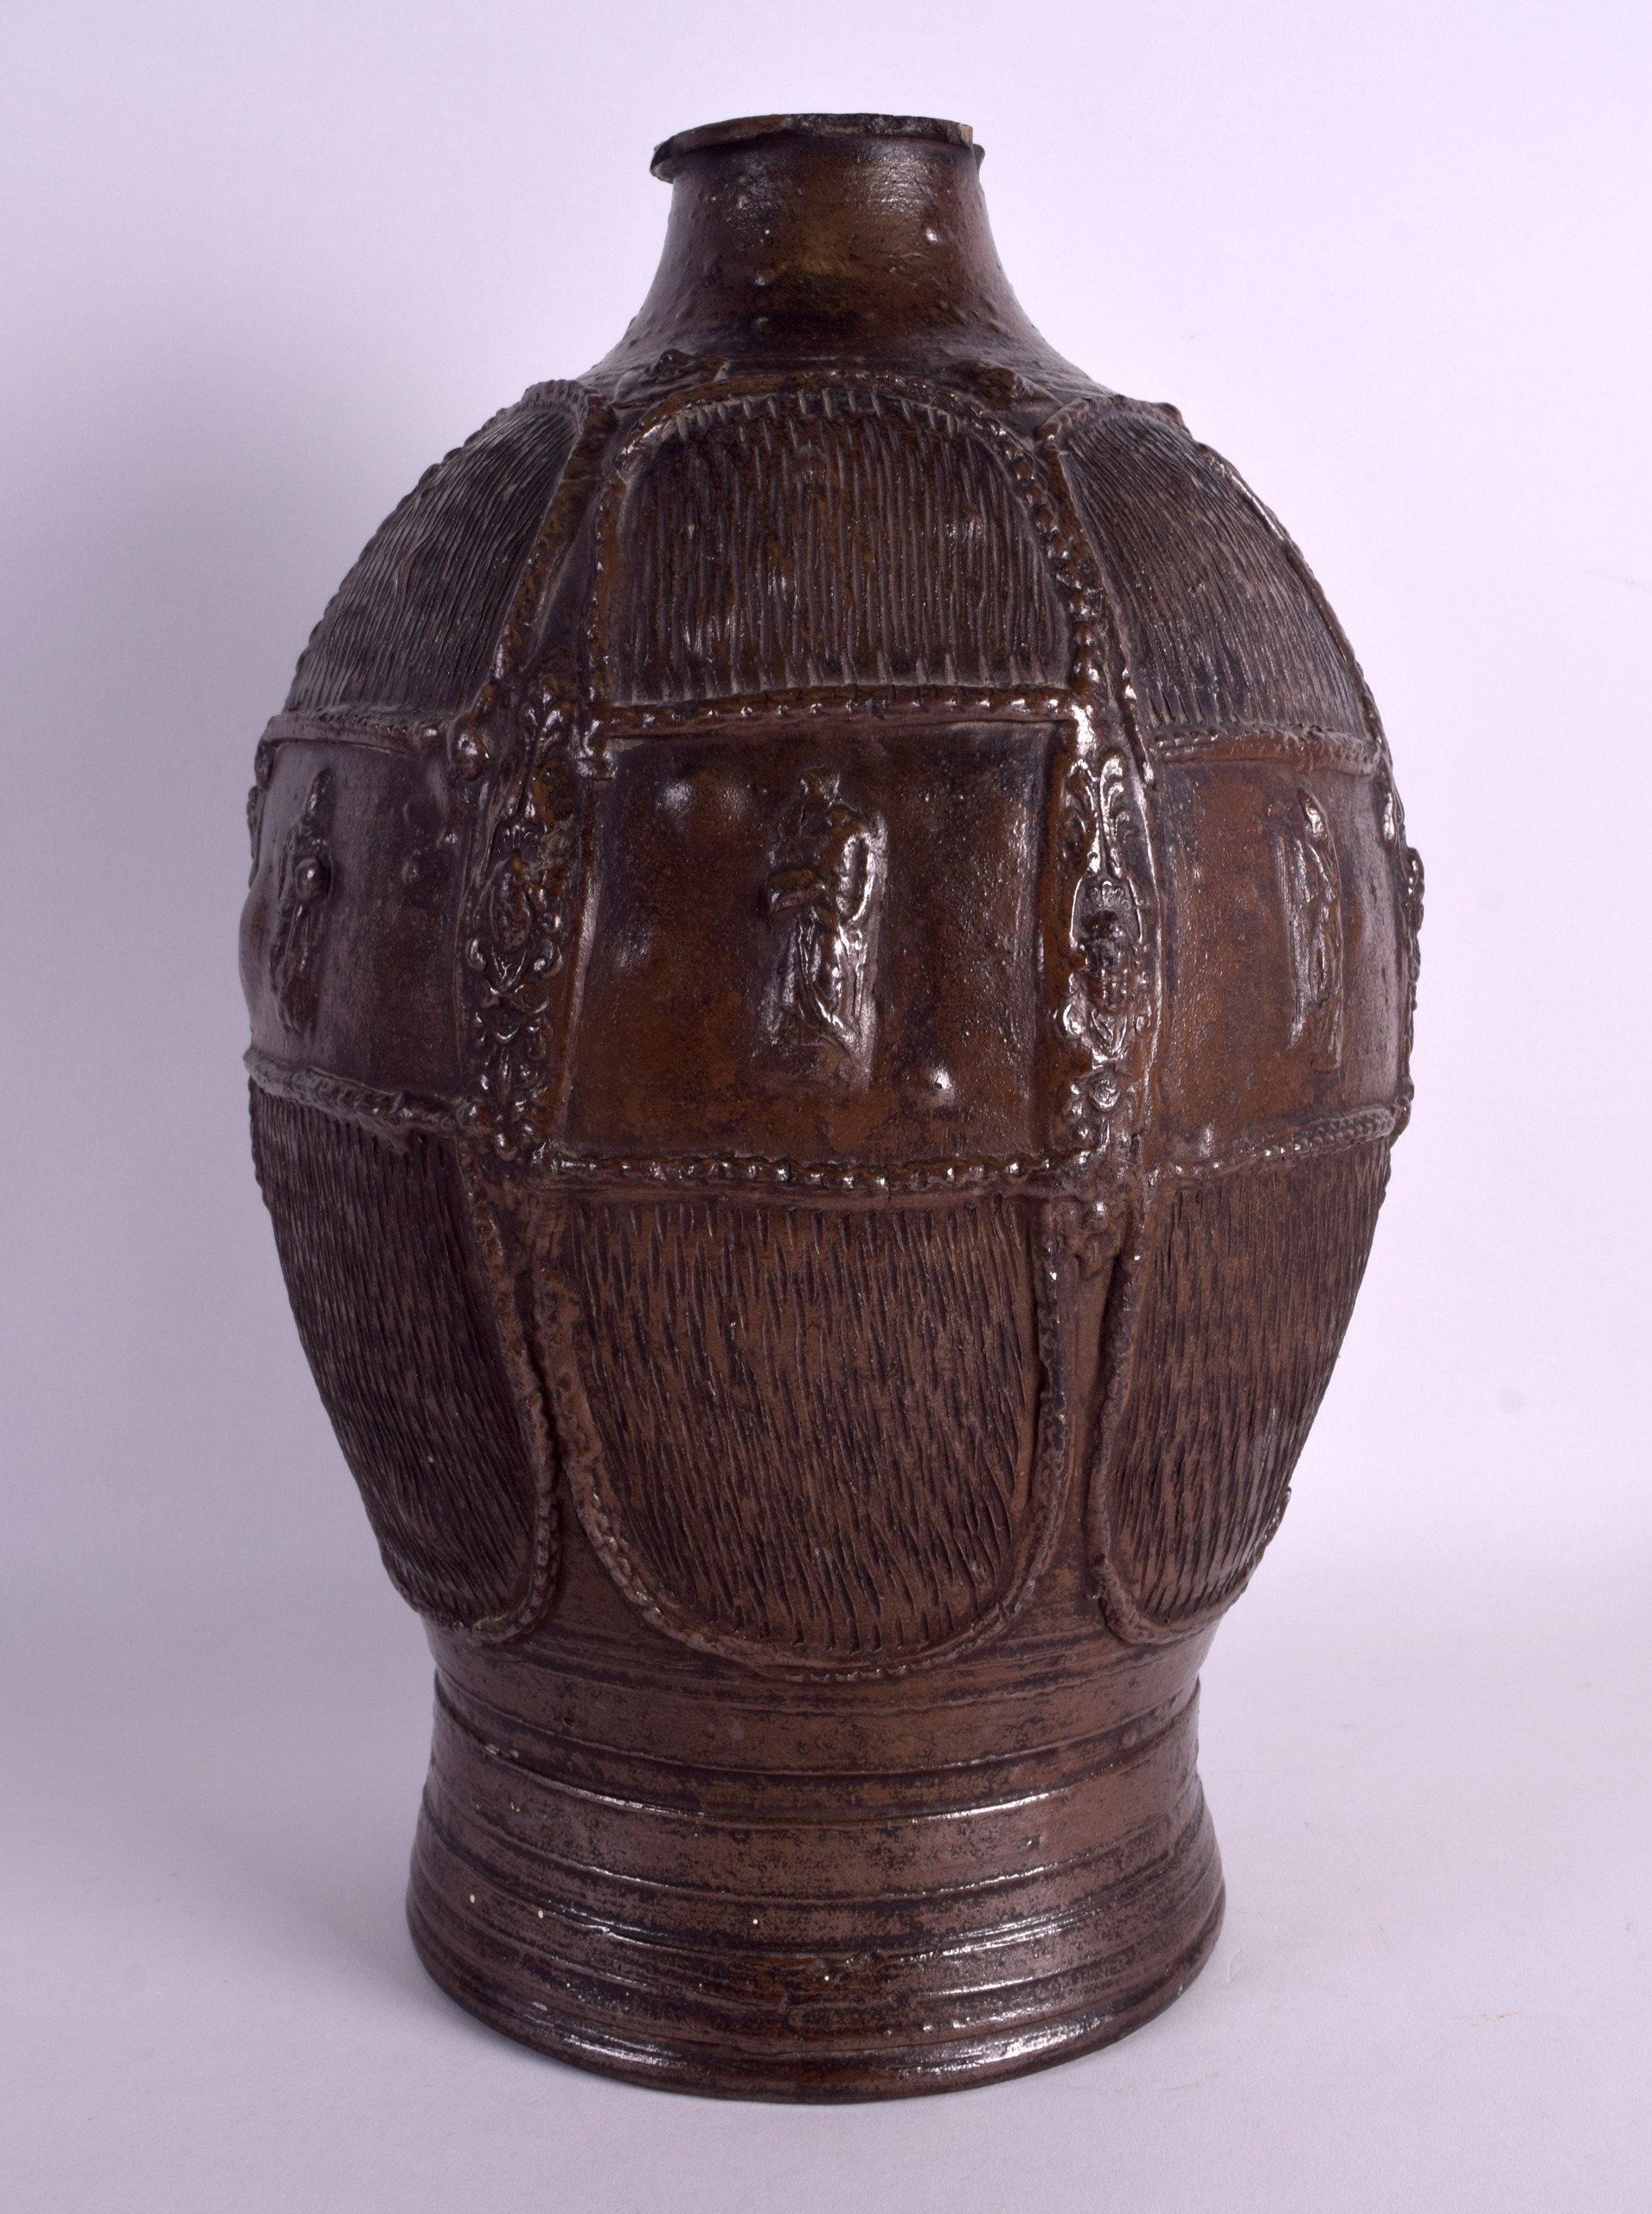 Lot 105 - A LARGE AND RARE 17TH/18TH CENTURY GERMAN STONEWARE VESSEL decorated in relief with figures and